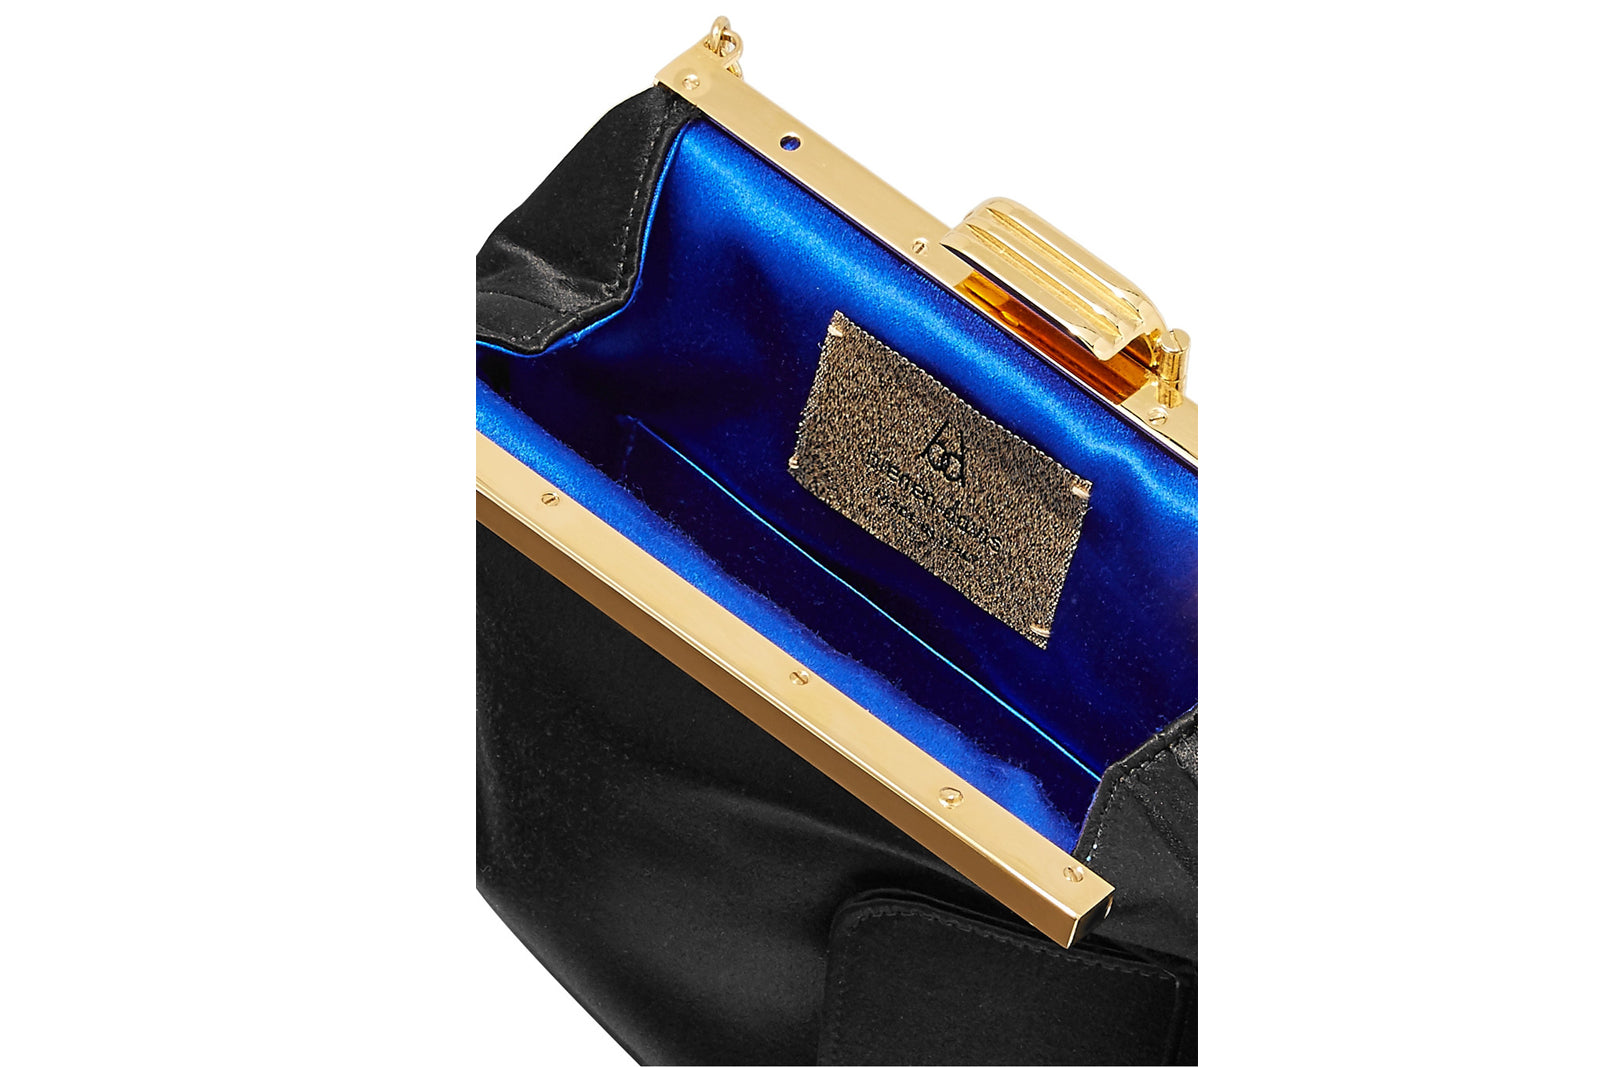 4 AM Tassel Clutch in Black Silk Satin with 24k Gold Dipped Hardware